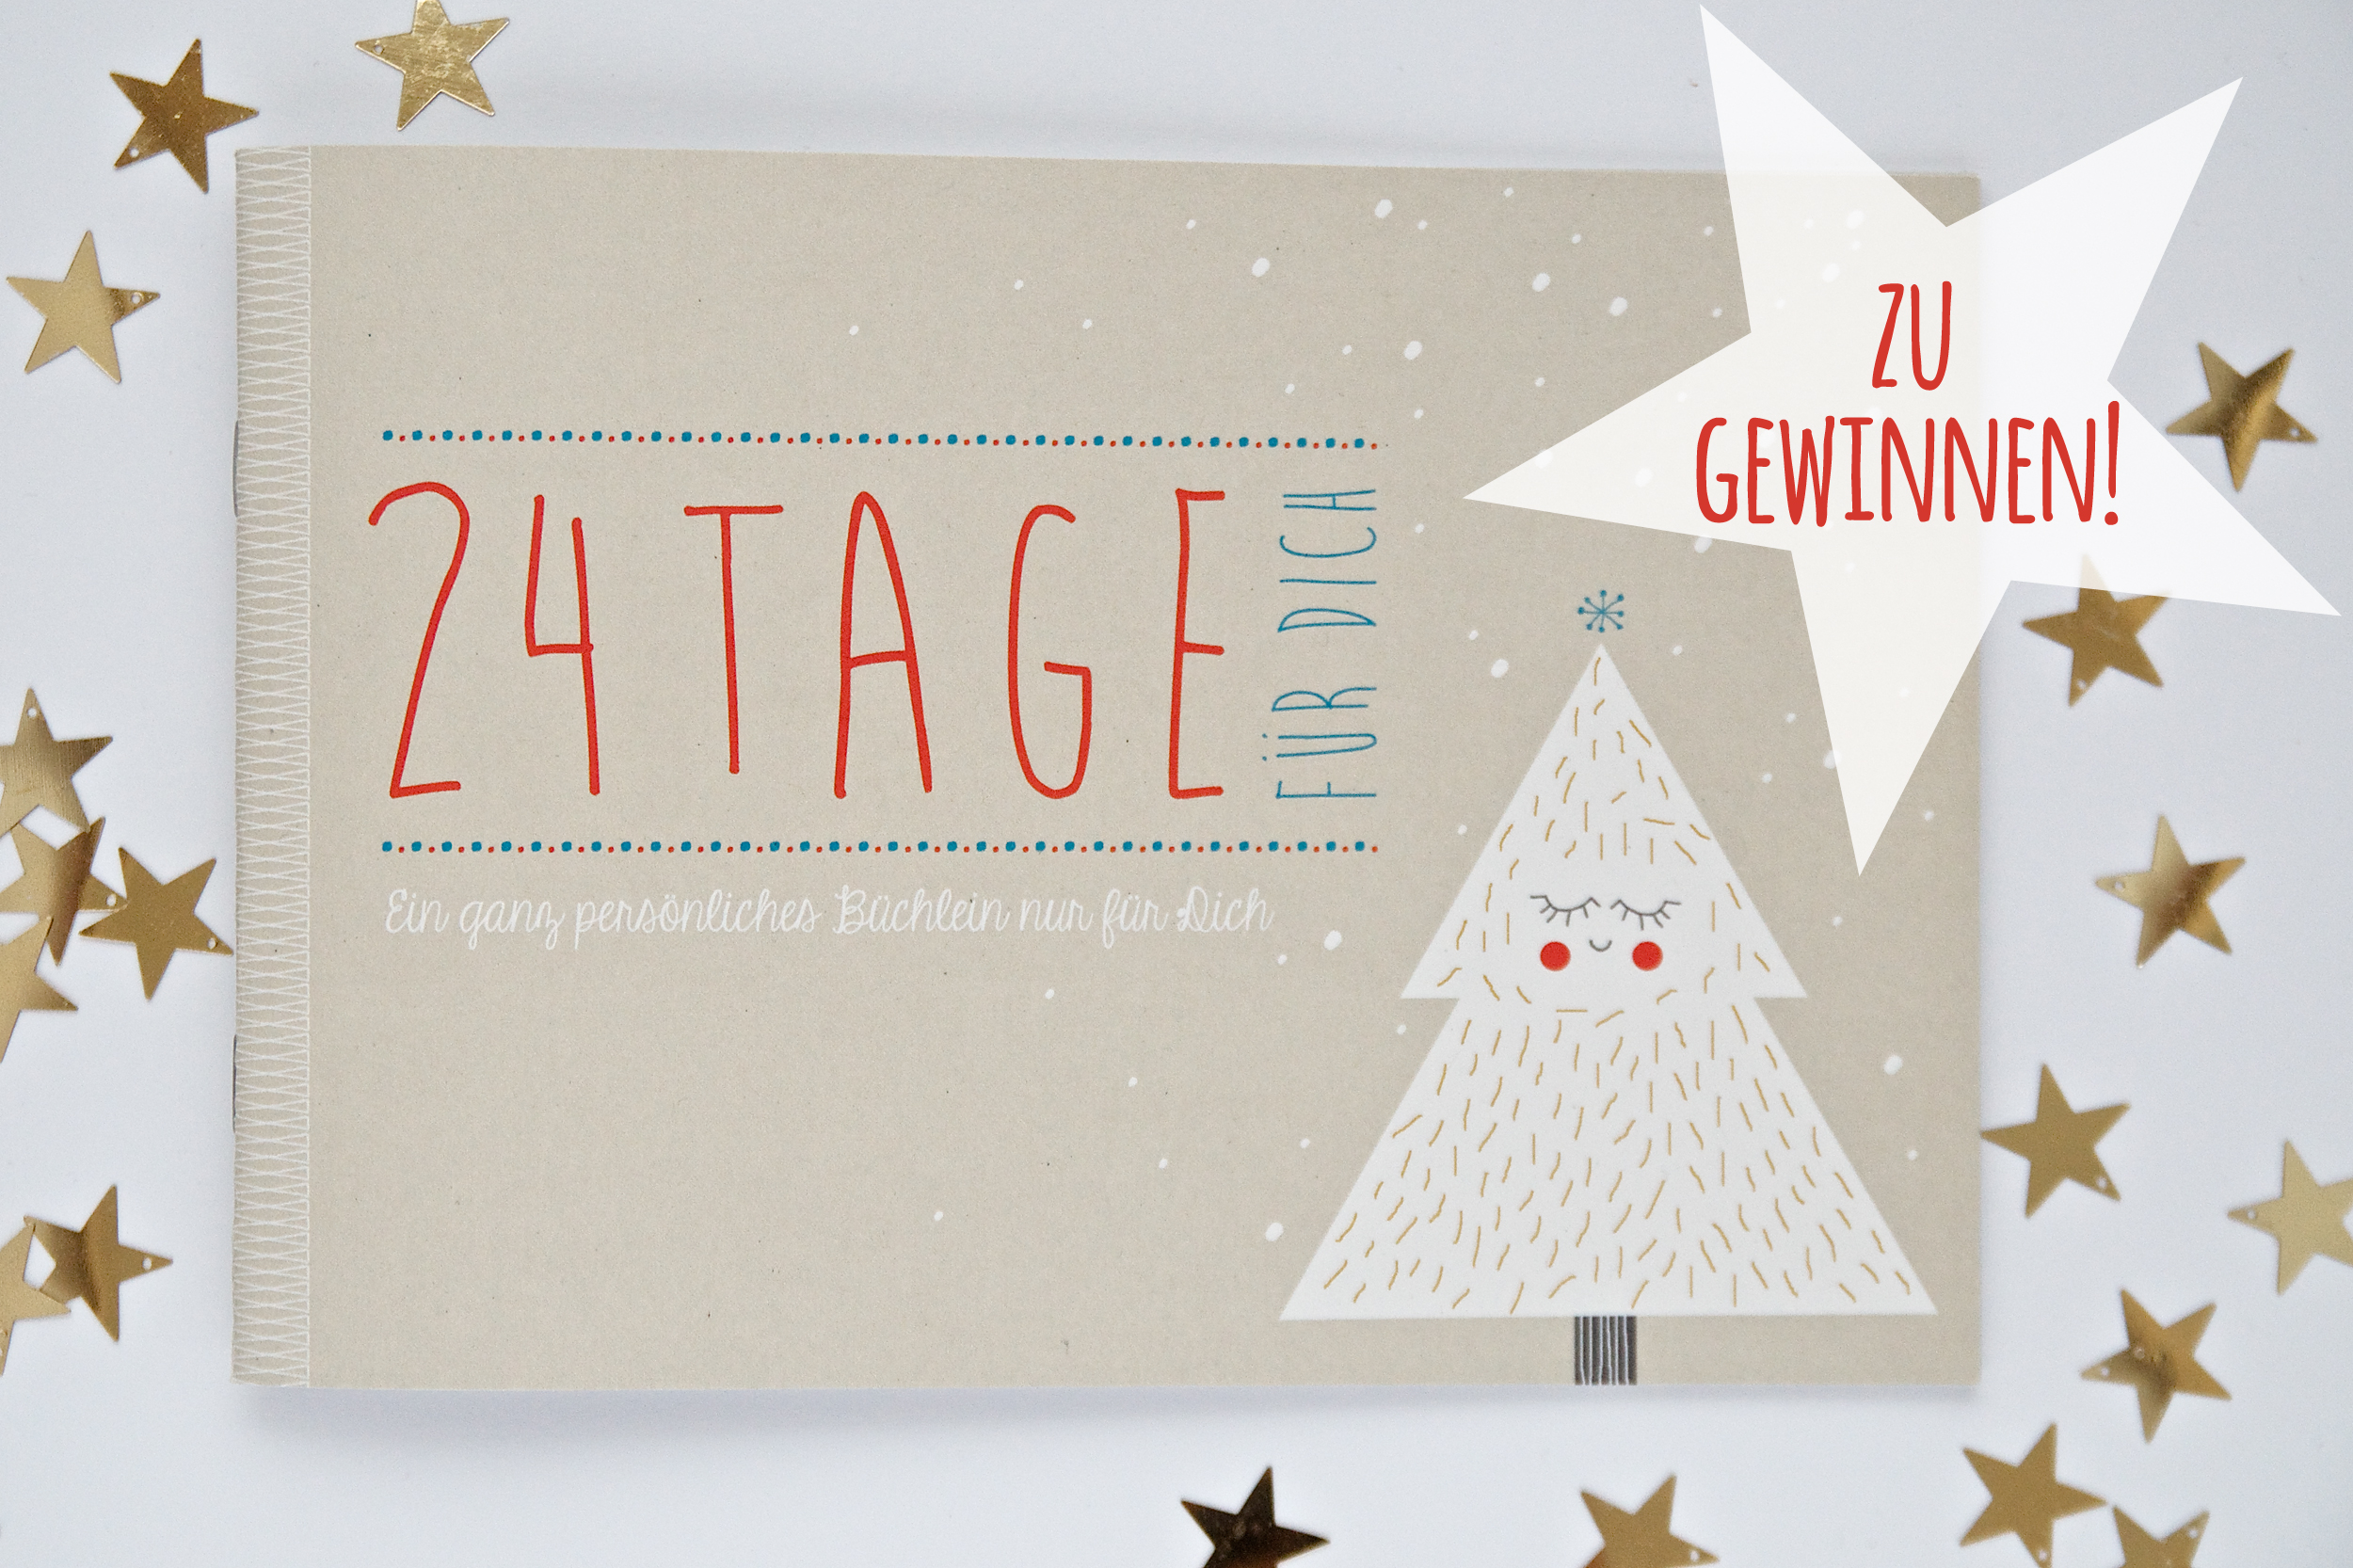 ava&yves Shopvorstellung & Giveaway Adventskalenderbüchlein Adventskalender Pinkepank Blog